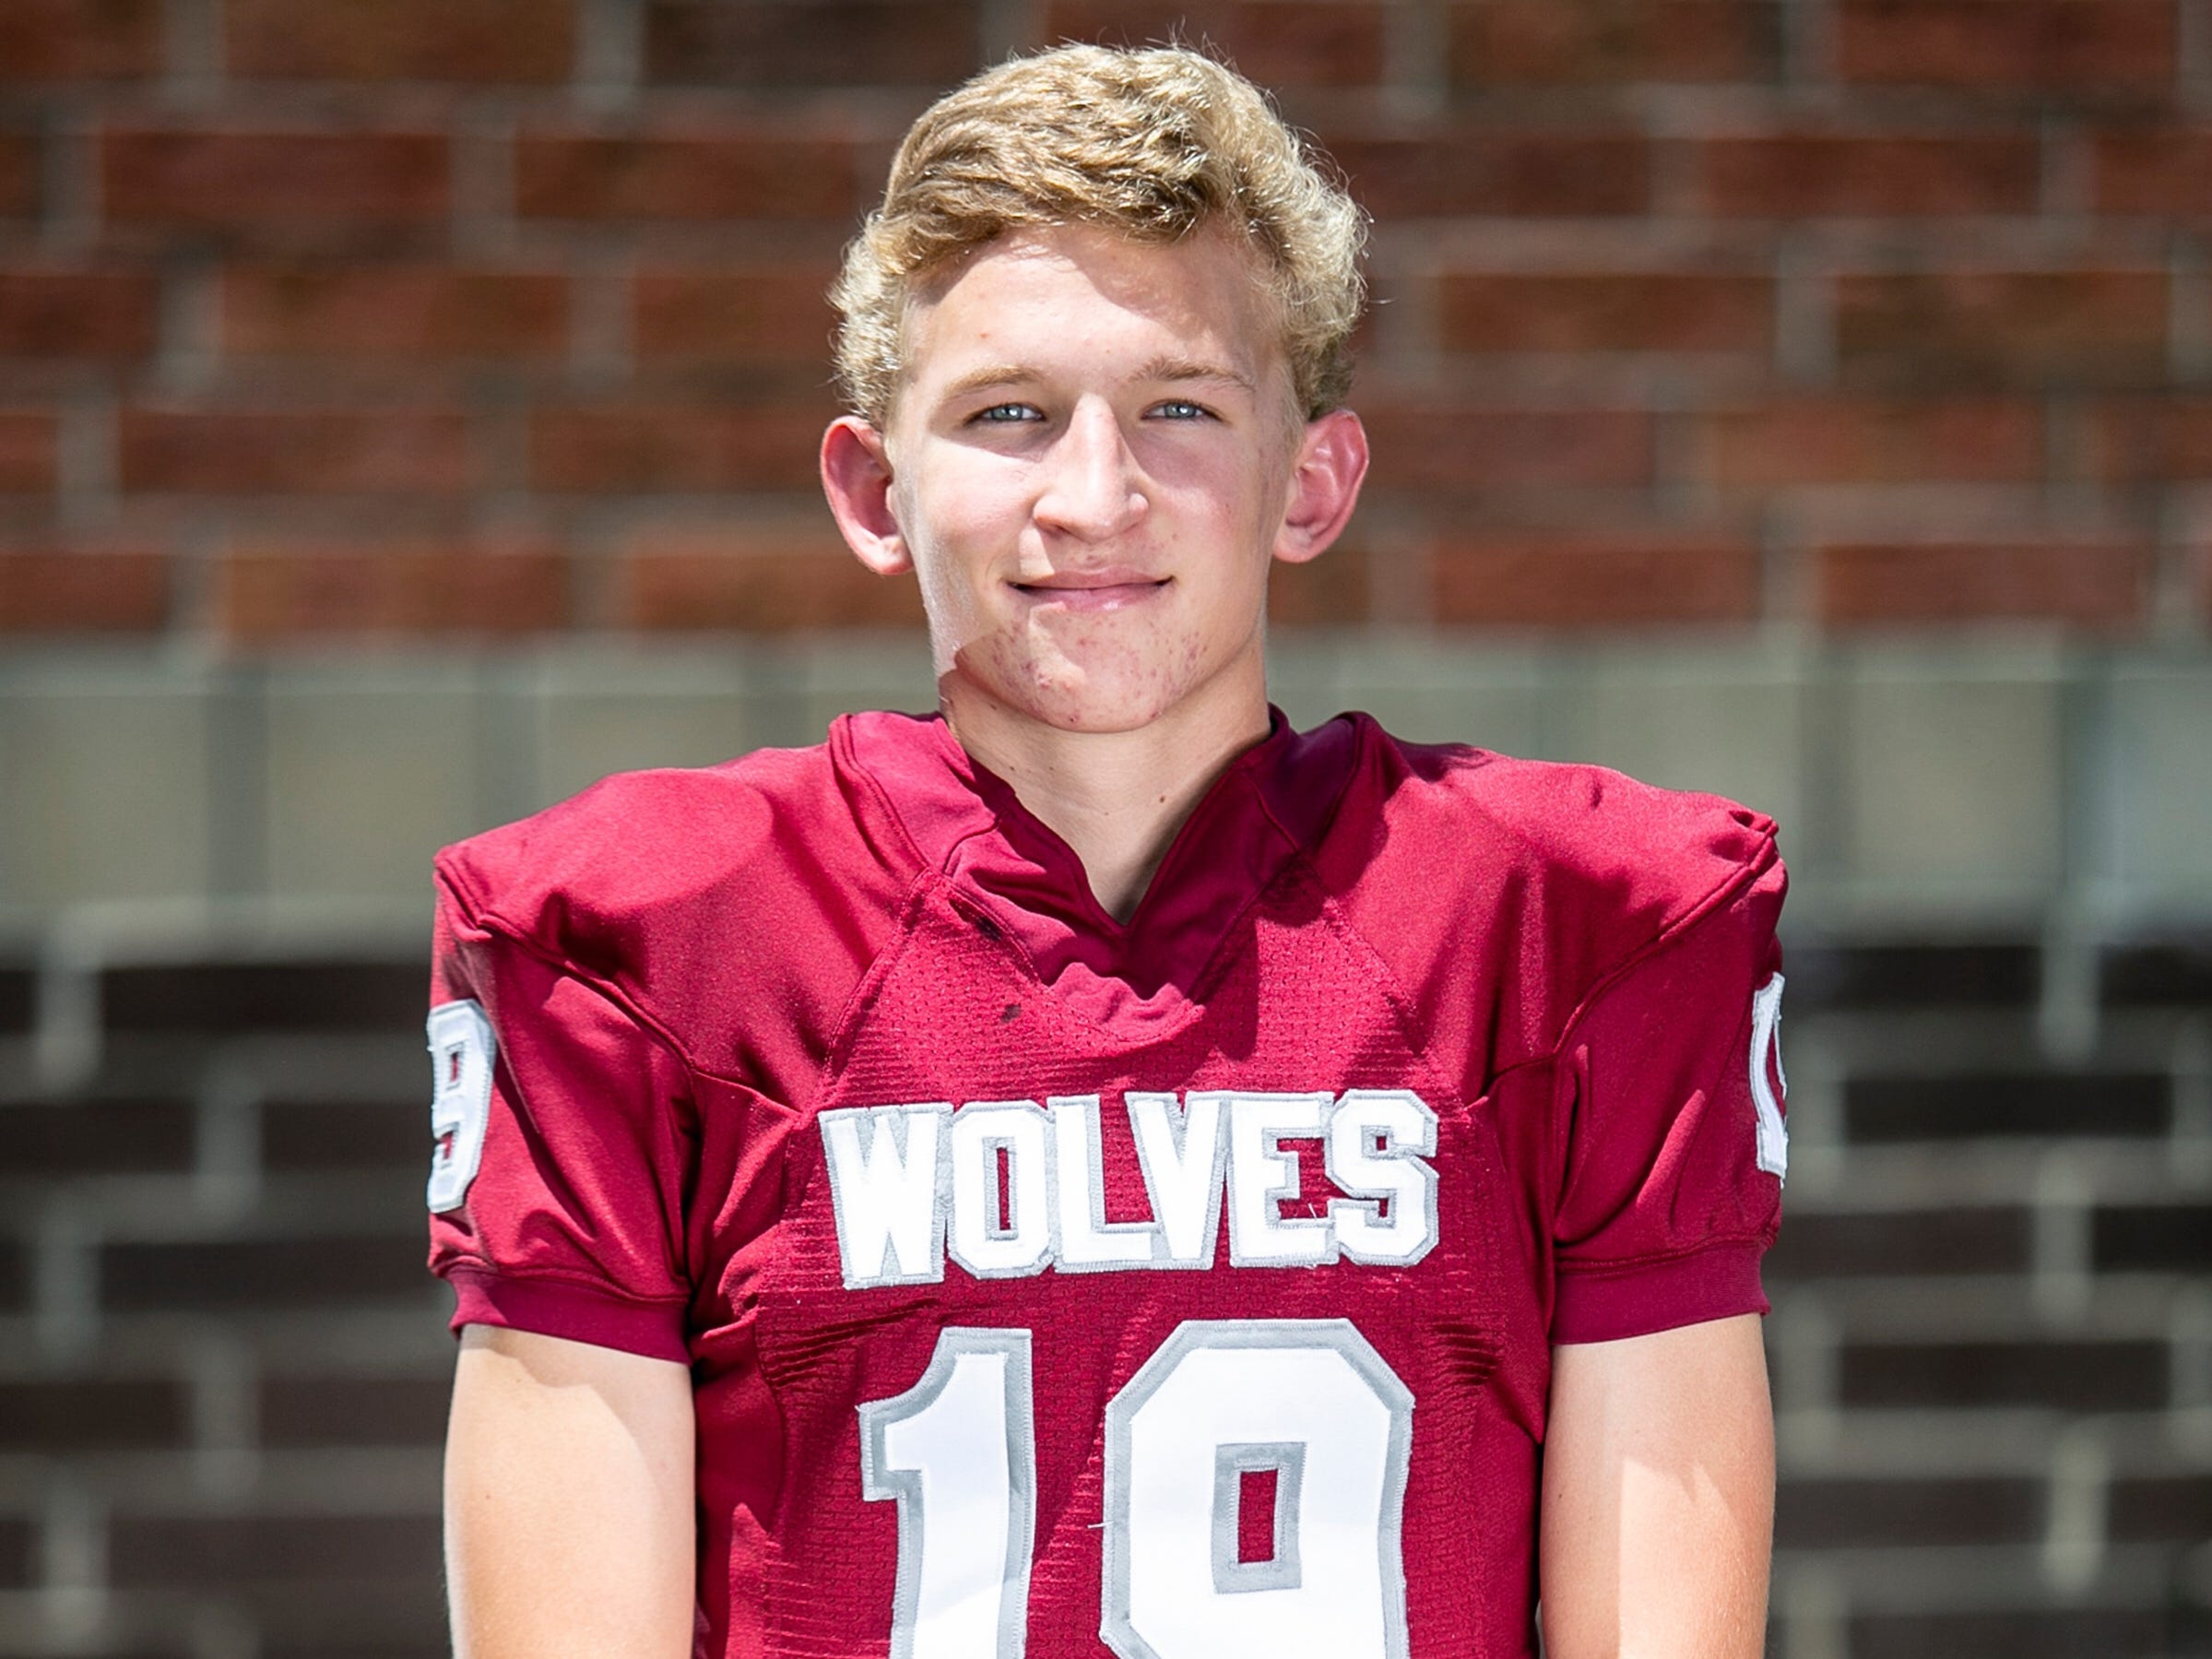 Chiles senior kicker Tyler Keltner was named to the 2018 All-Big Bend football first team for offense. STATS: 40-41 PAT, 7-10 FG, long 48; 27 punts, 925 yards, 34.3 avg., long 53